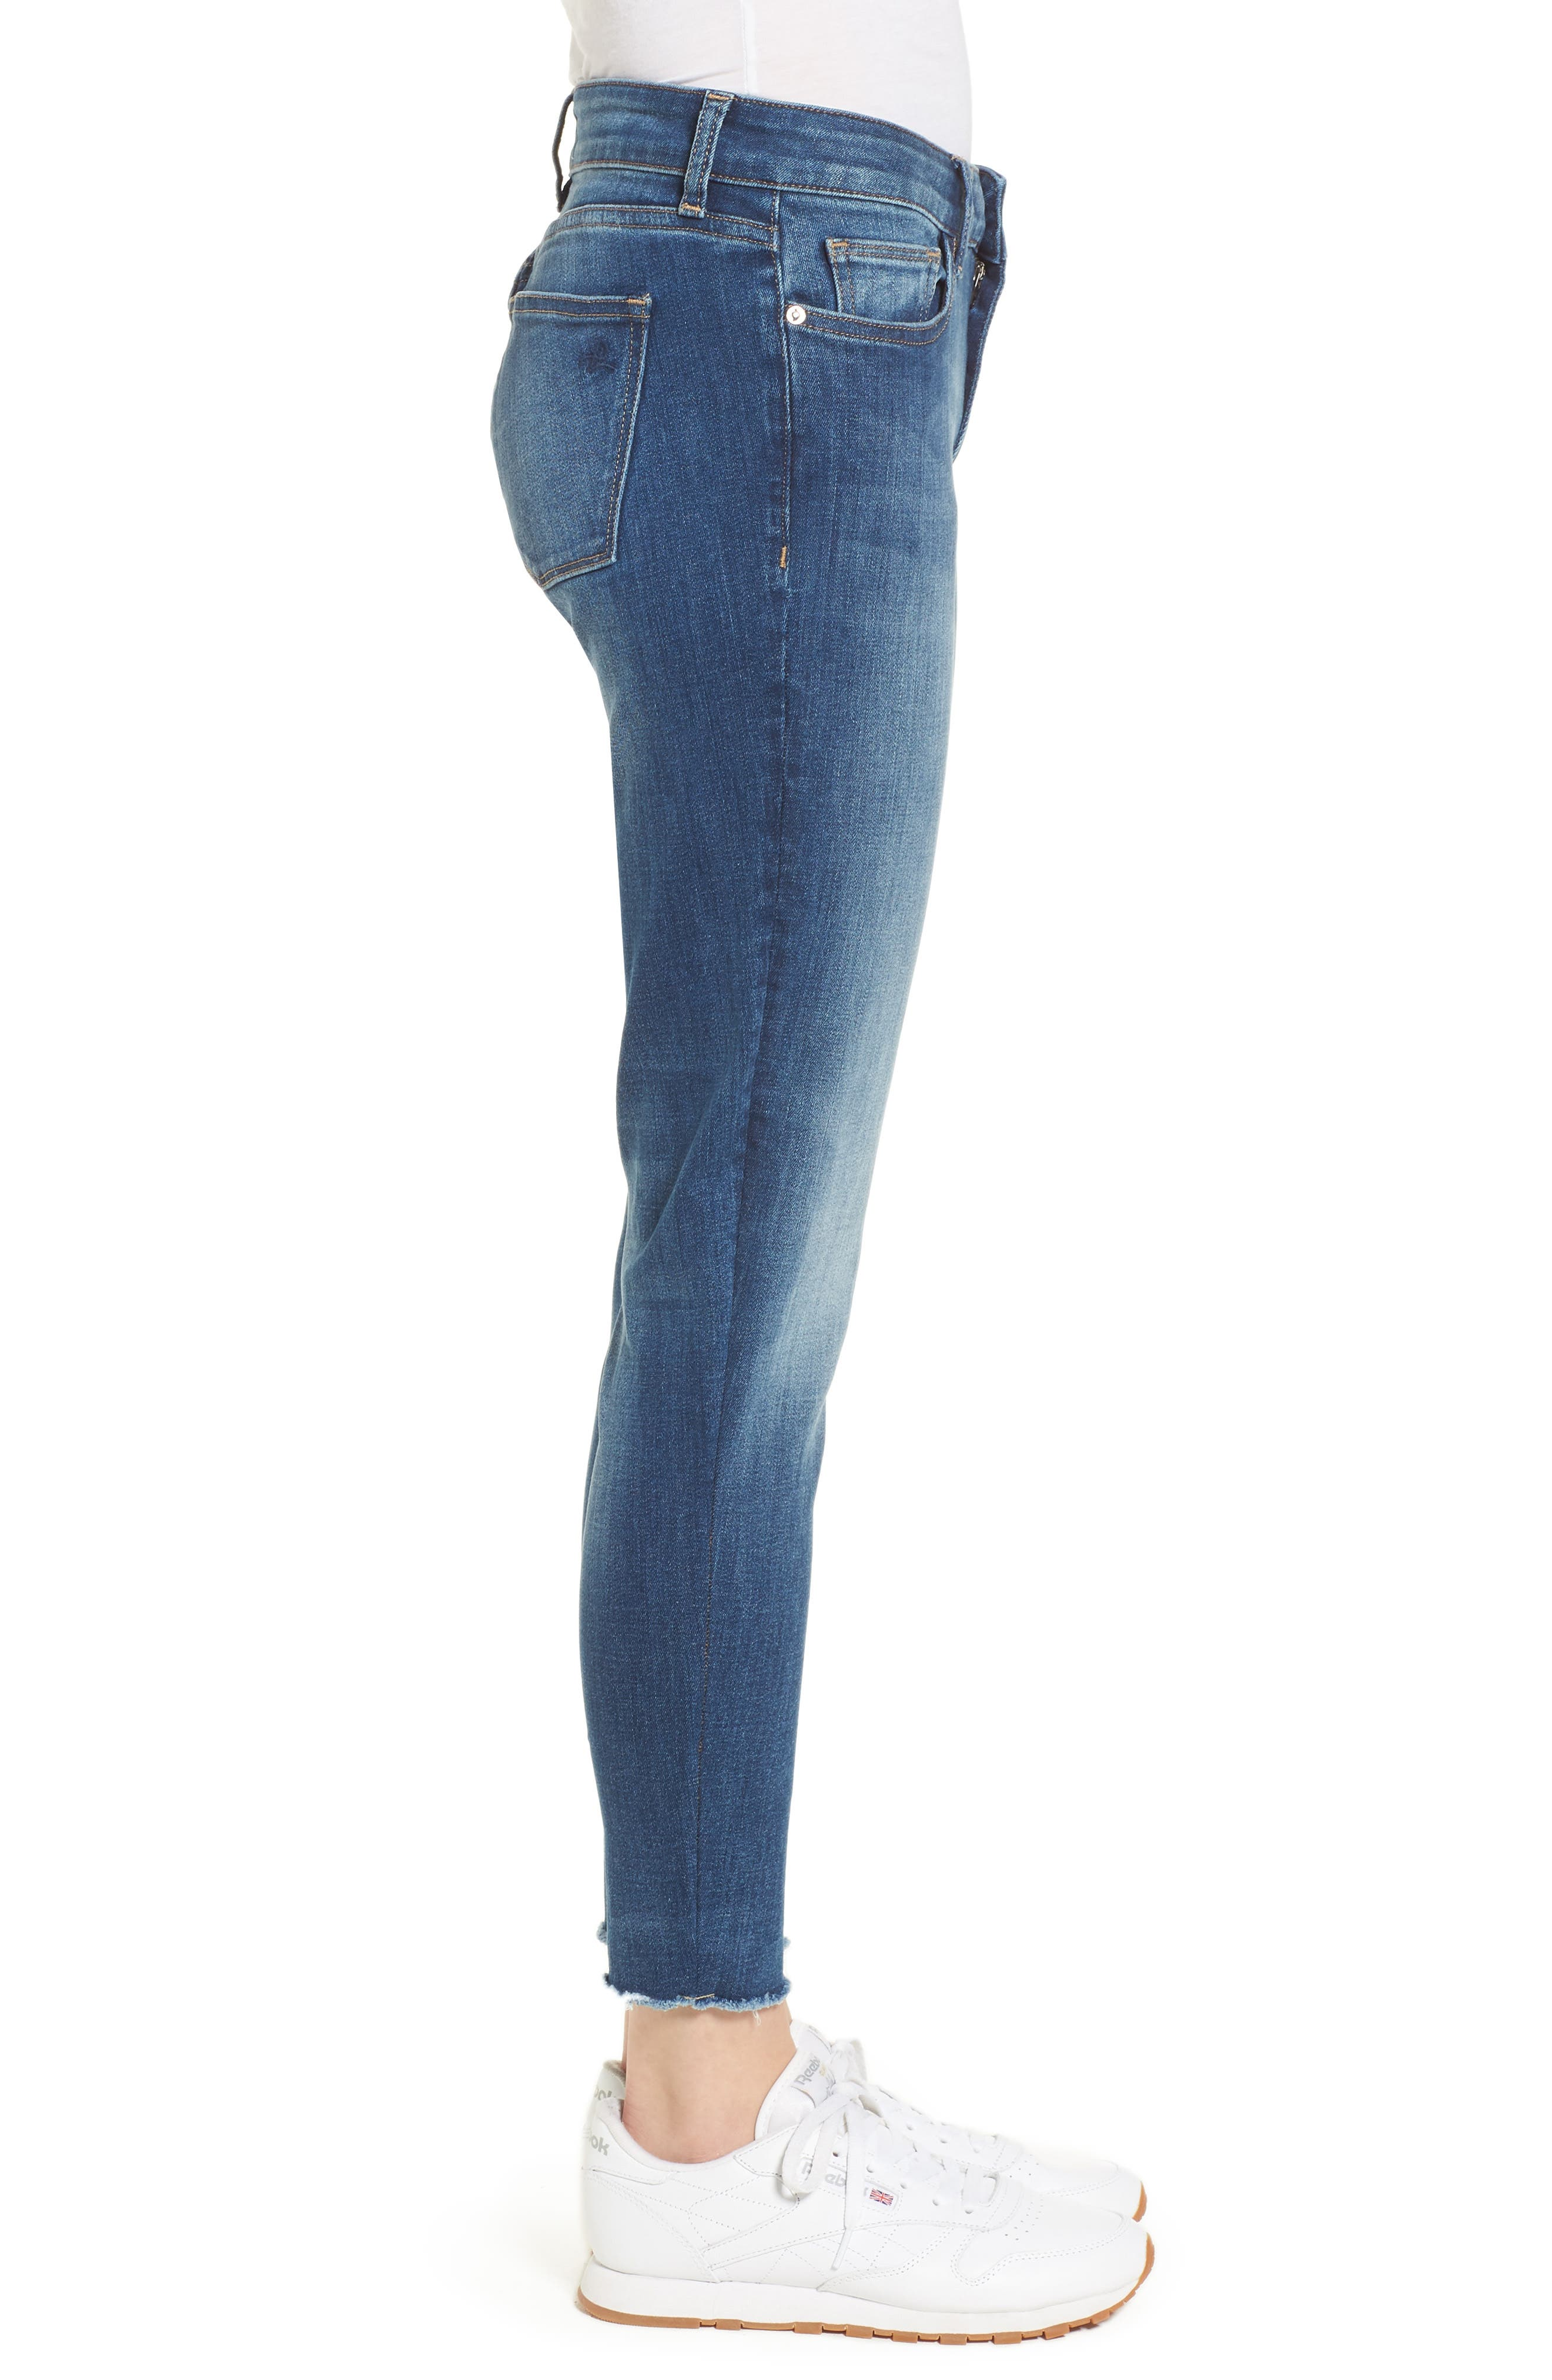 Coco Curvy Ankle Skinny Jeans,                             Alternate thumbnail 3, color,                             Callahan